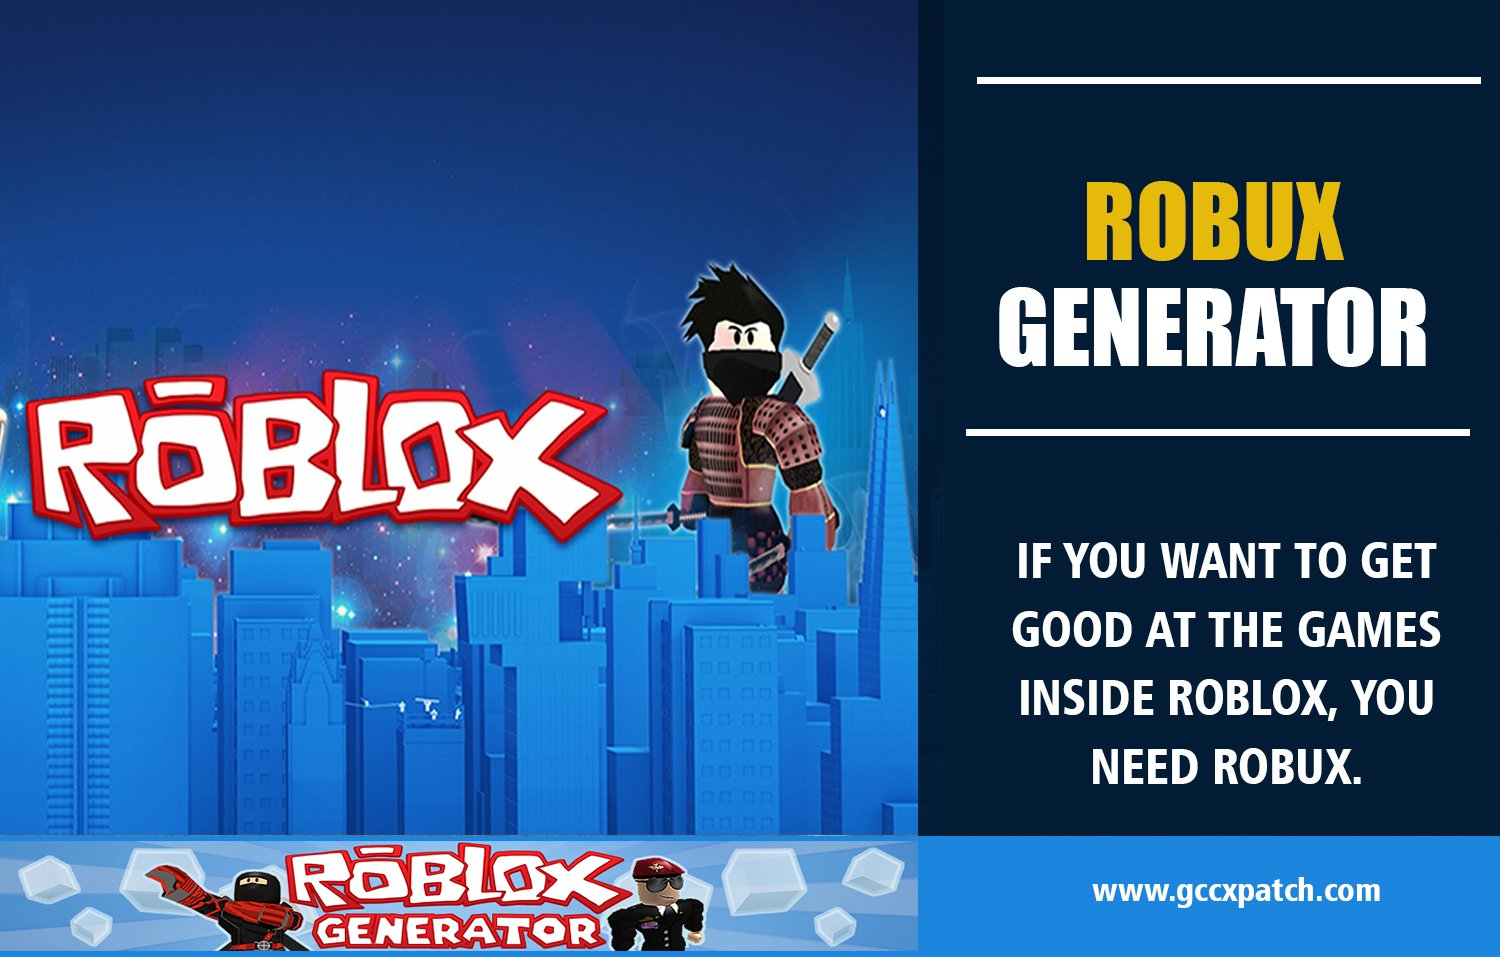 Robux Generator On Twitter There Is A Way To Get Roblox